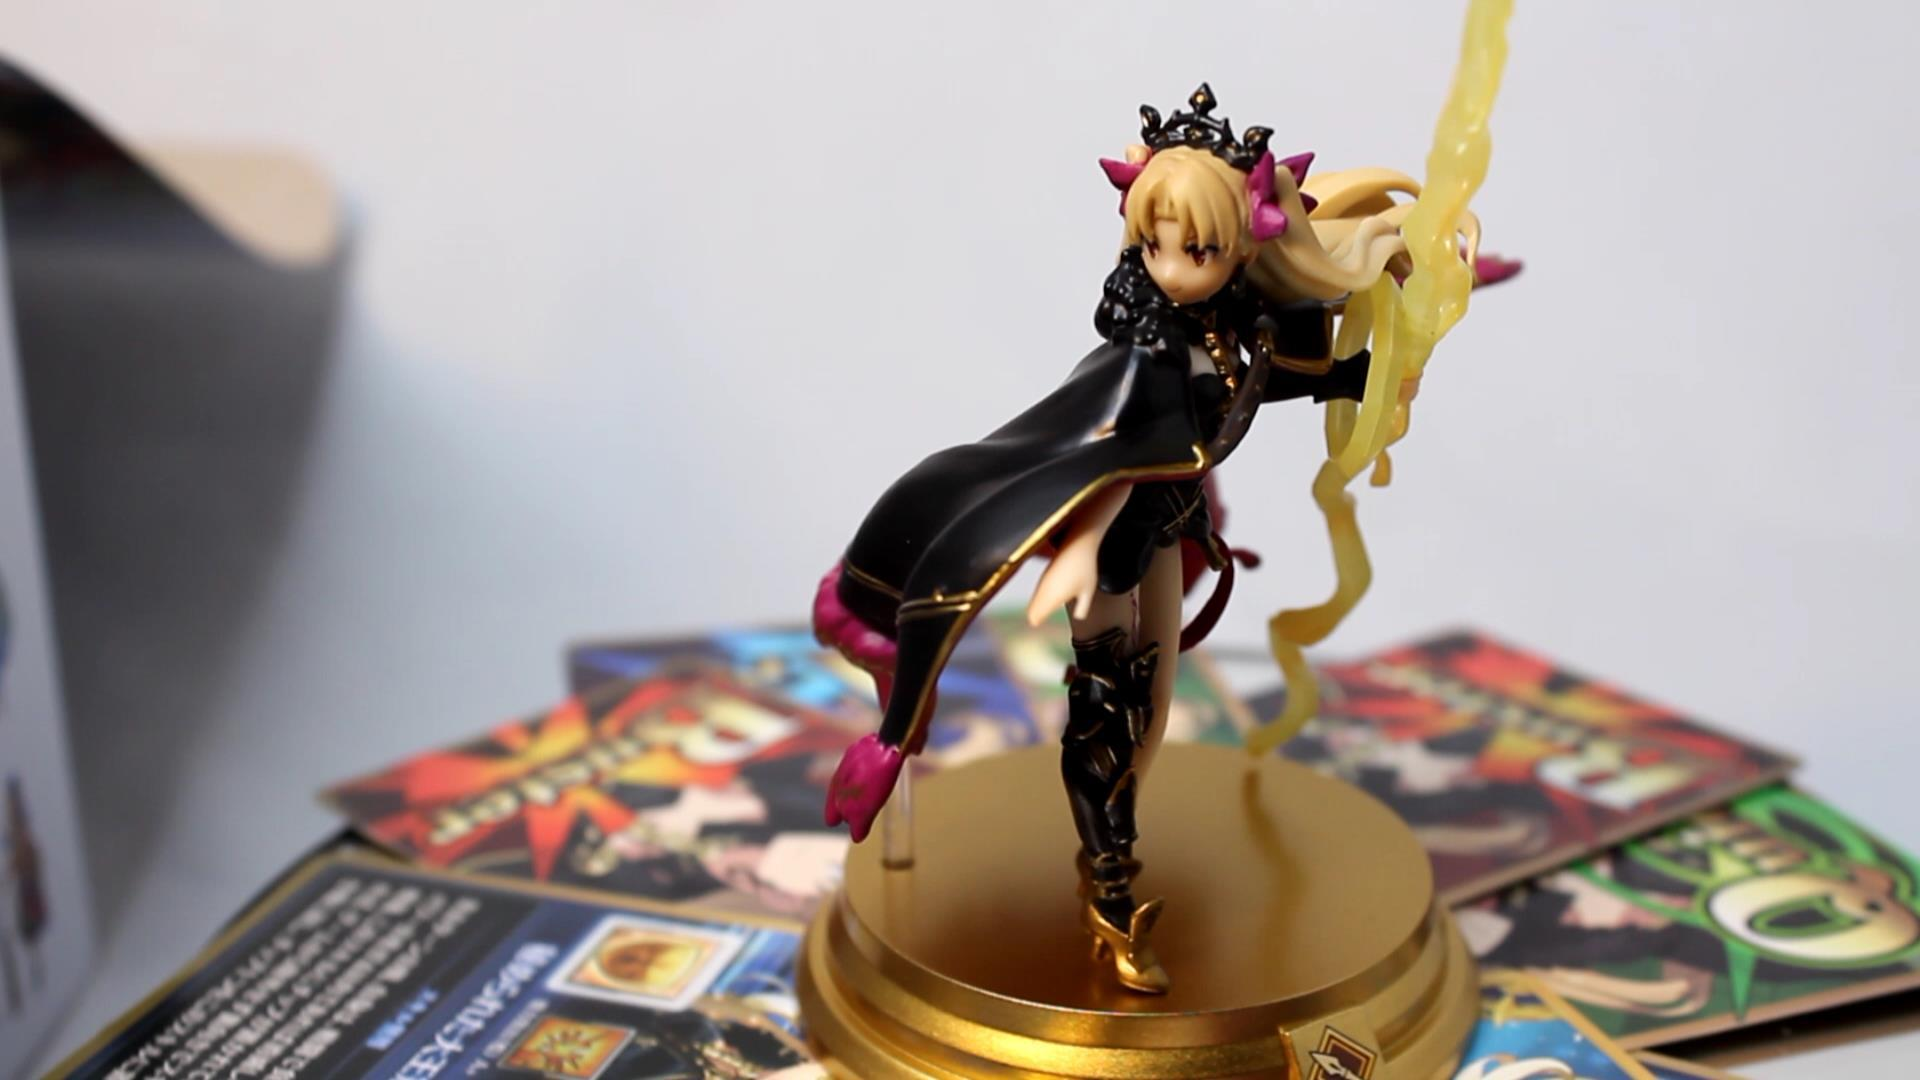 [Fate/Grand Order] Duel collection figure Vol.10 review(Unboxing ANIPLEX+) 絶対魔獣戦線バビロニアエレシュキガル イシュタル_e0251890_11300621.jpg